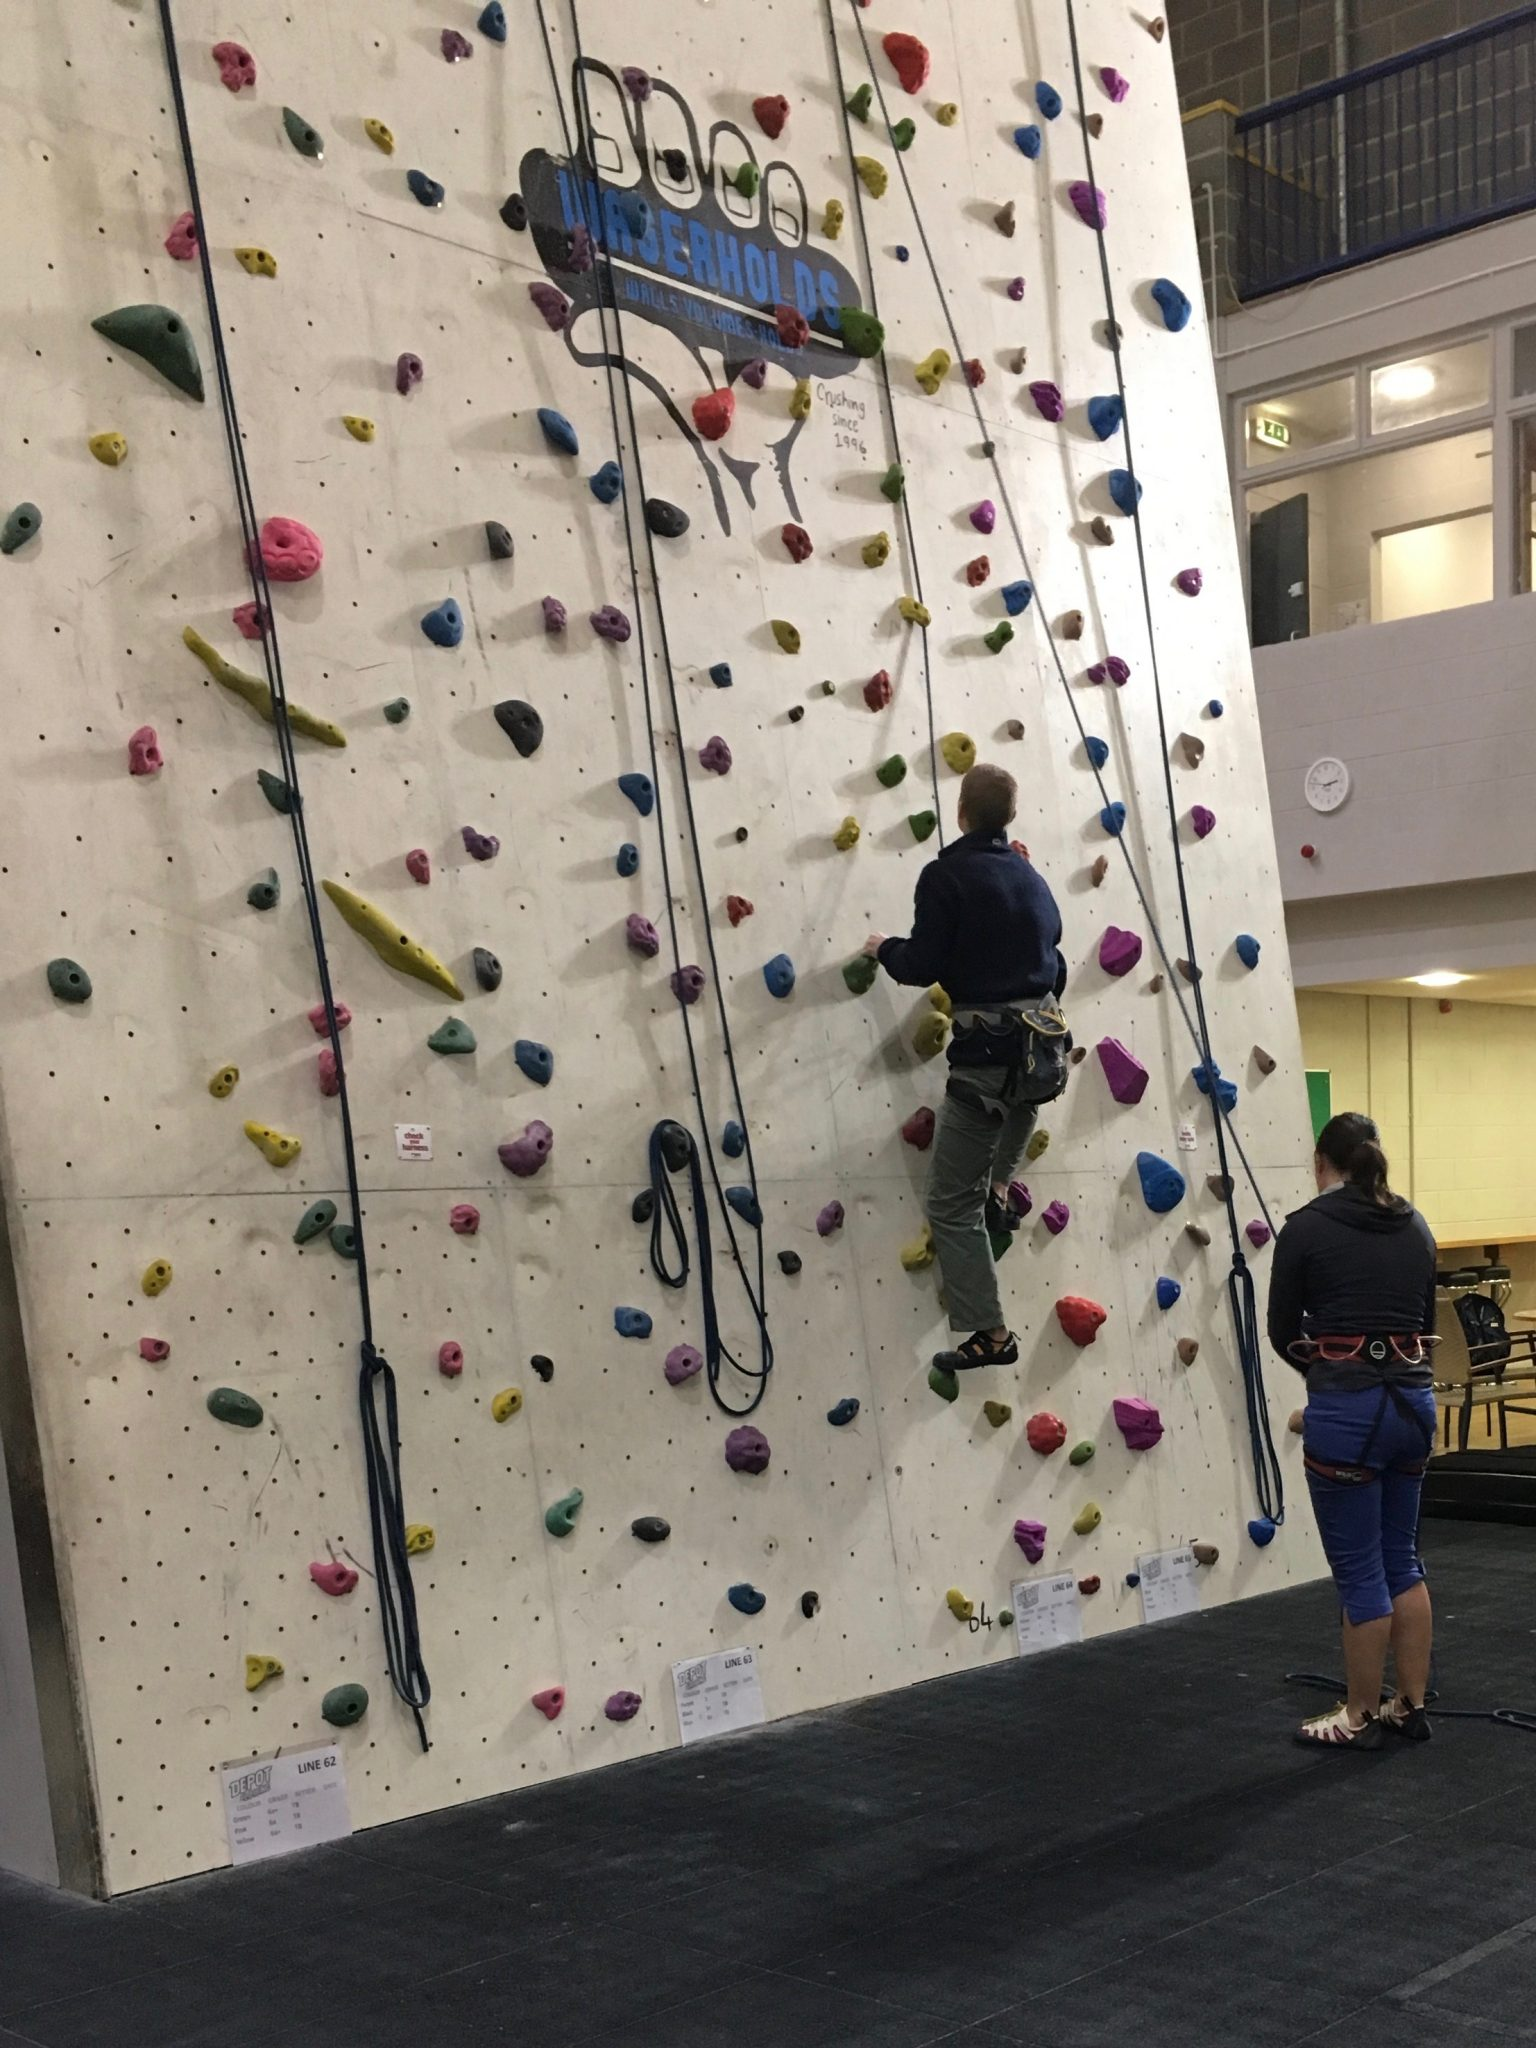 Climbers practising their technique, as you can learn our climbing course in Leeds